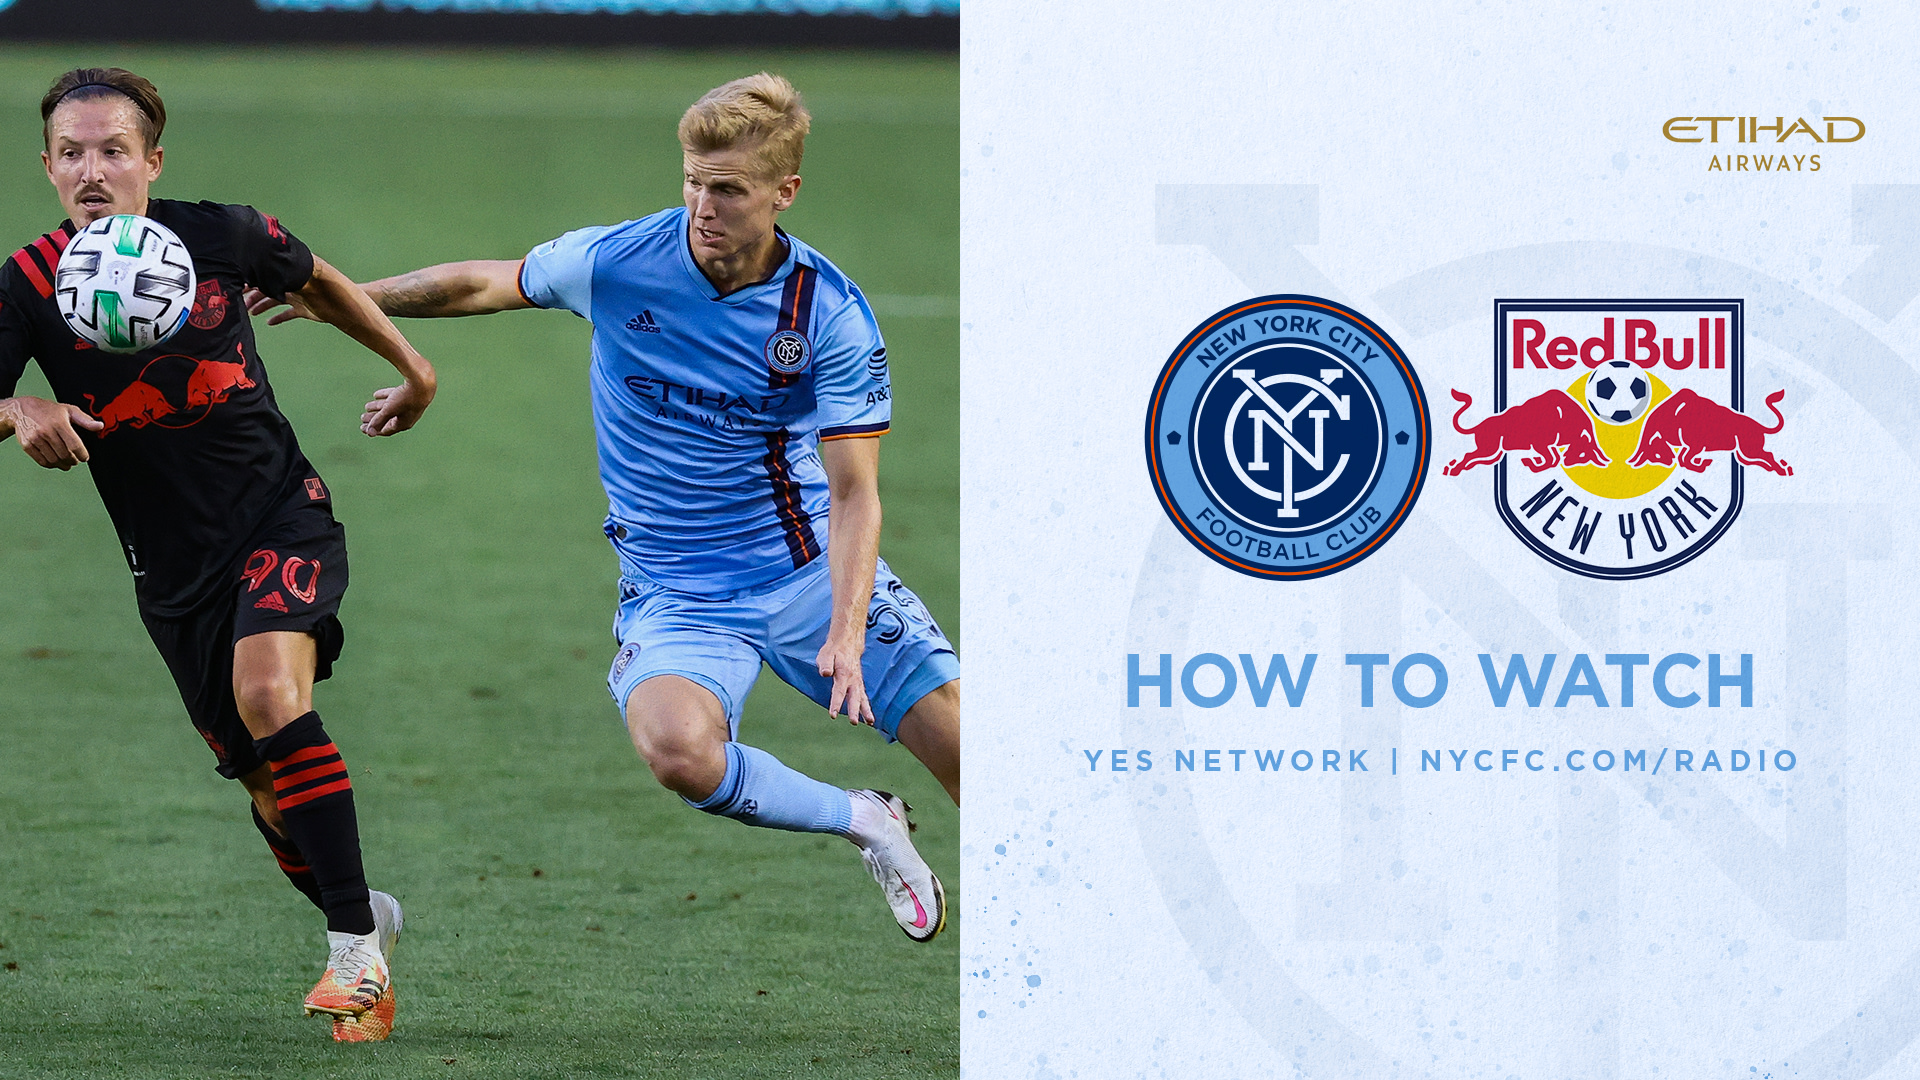 How to Watch & Listen to NYCFC vs. Red Bulls | New York City FC